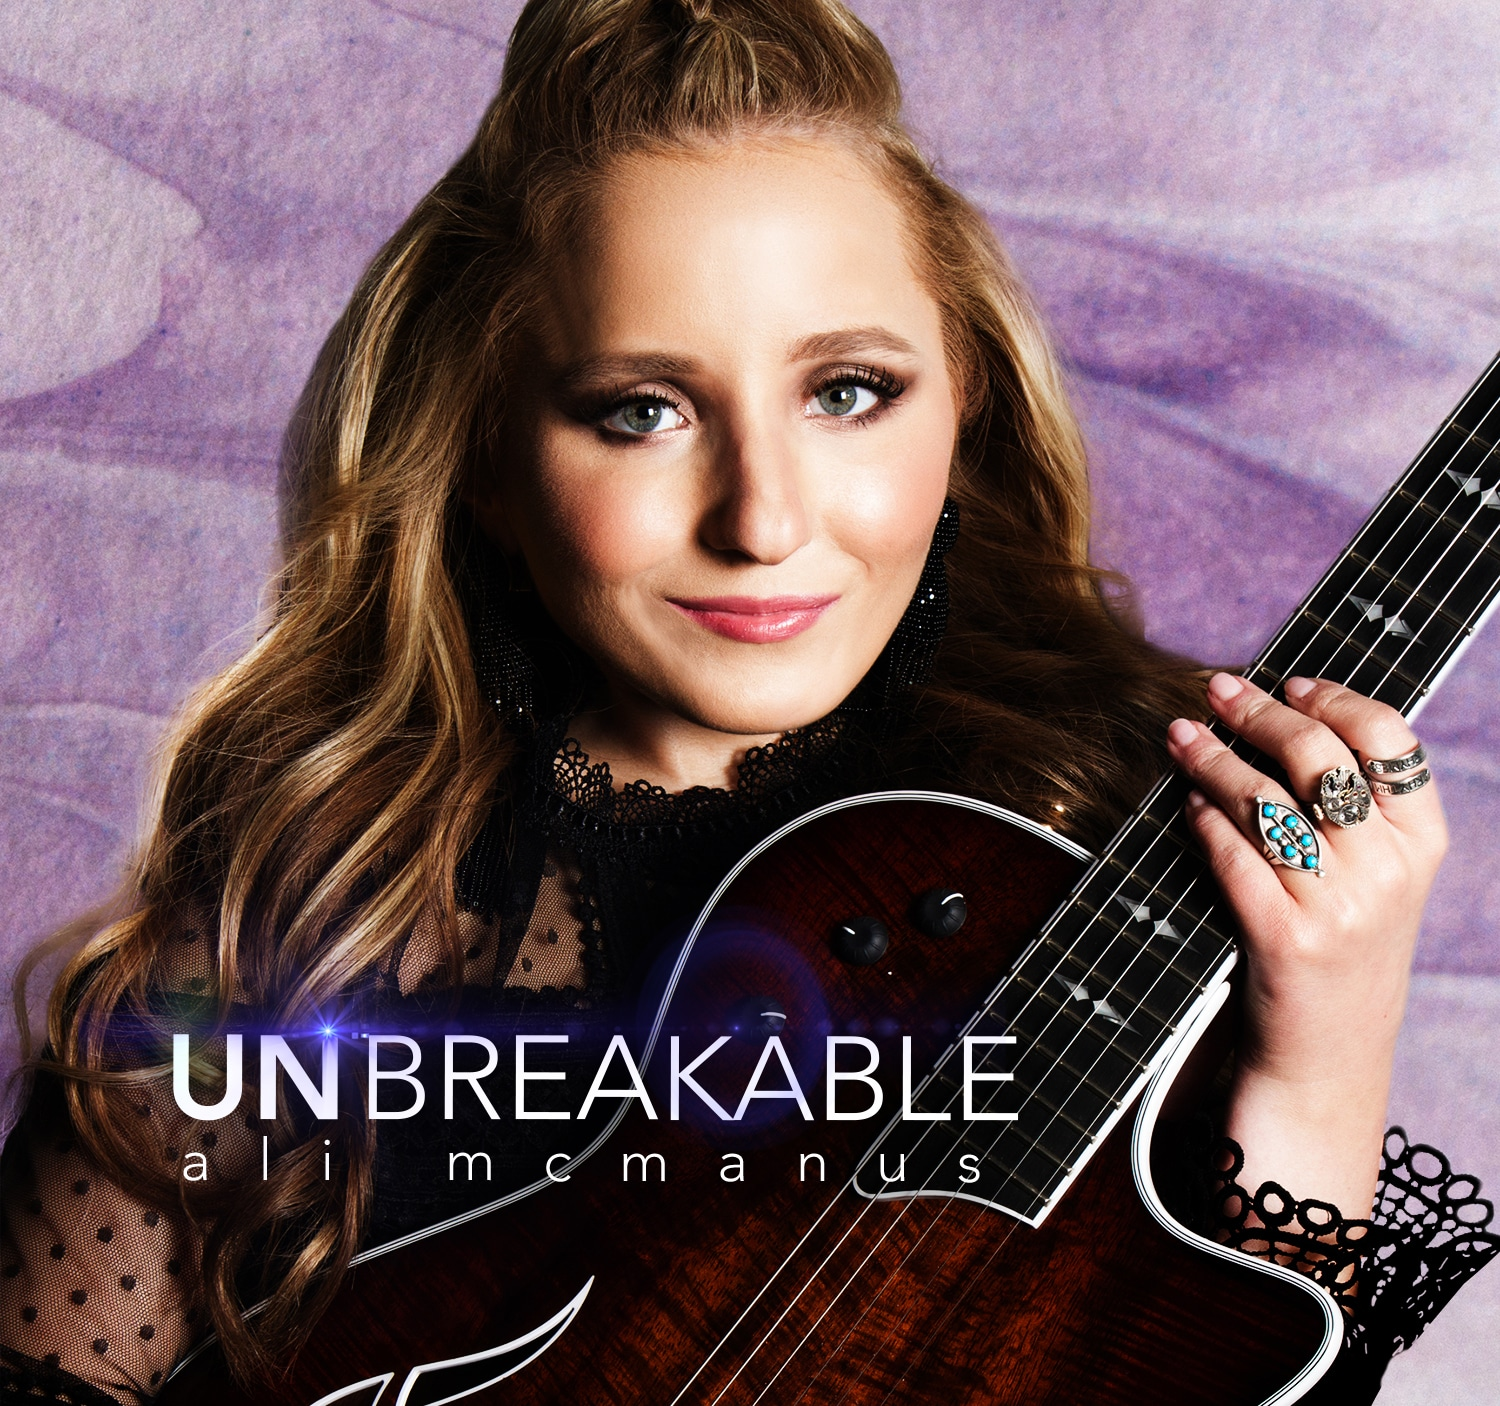 Ali McManus Unbreakable Album Cover